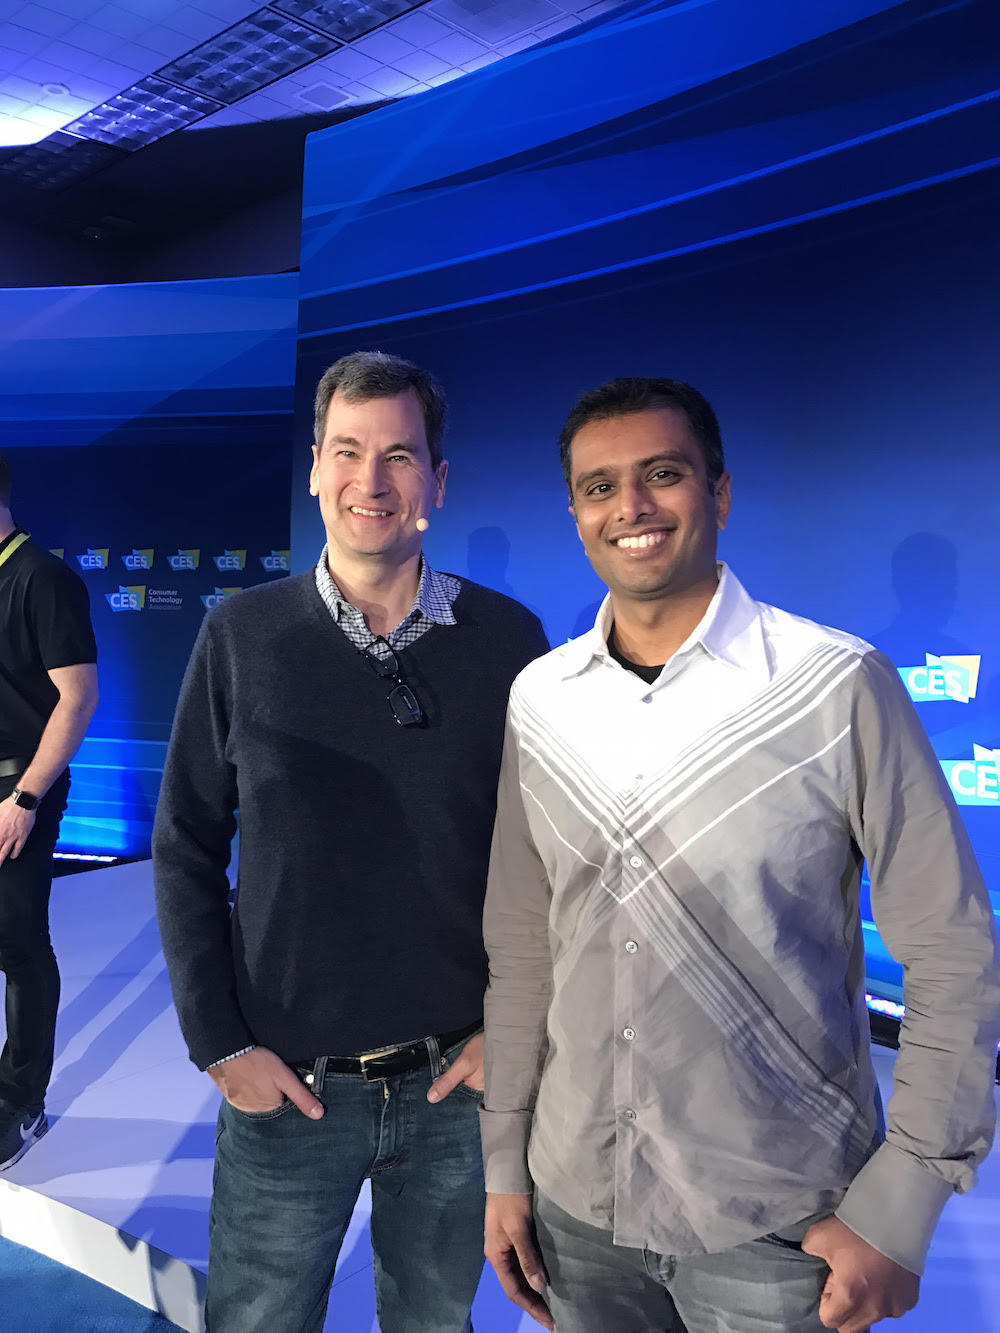 David Pogue, Founder of Yahoo Tech, and Ignition Design Labs' own Vinit Modi